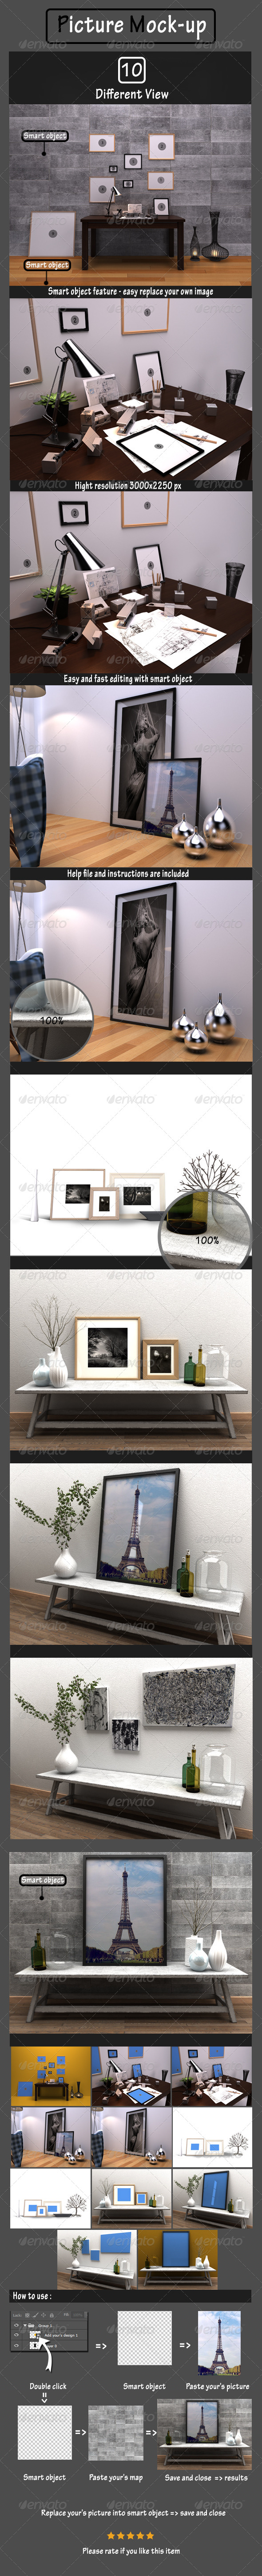 Picture Mockup - Posters Print